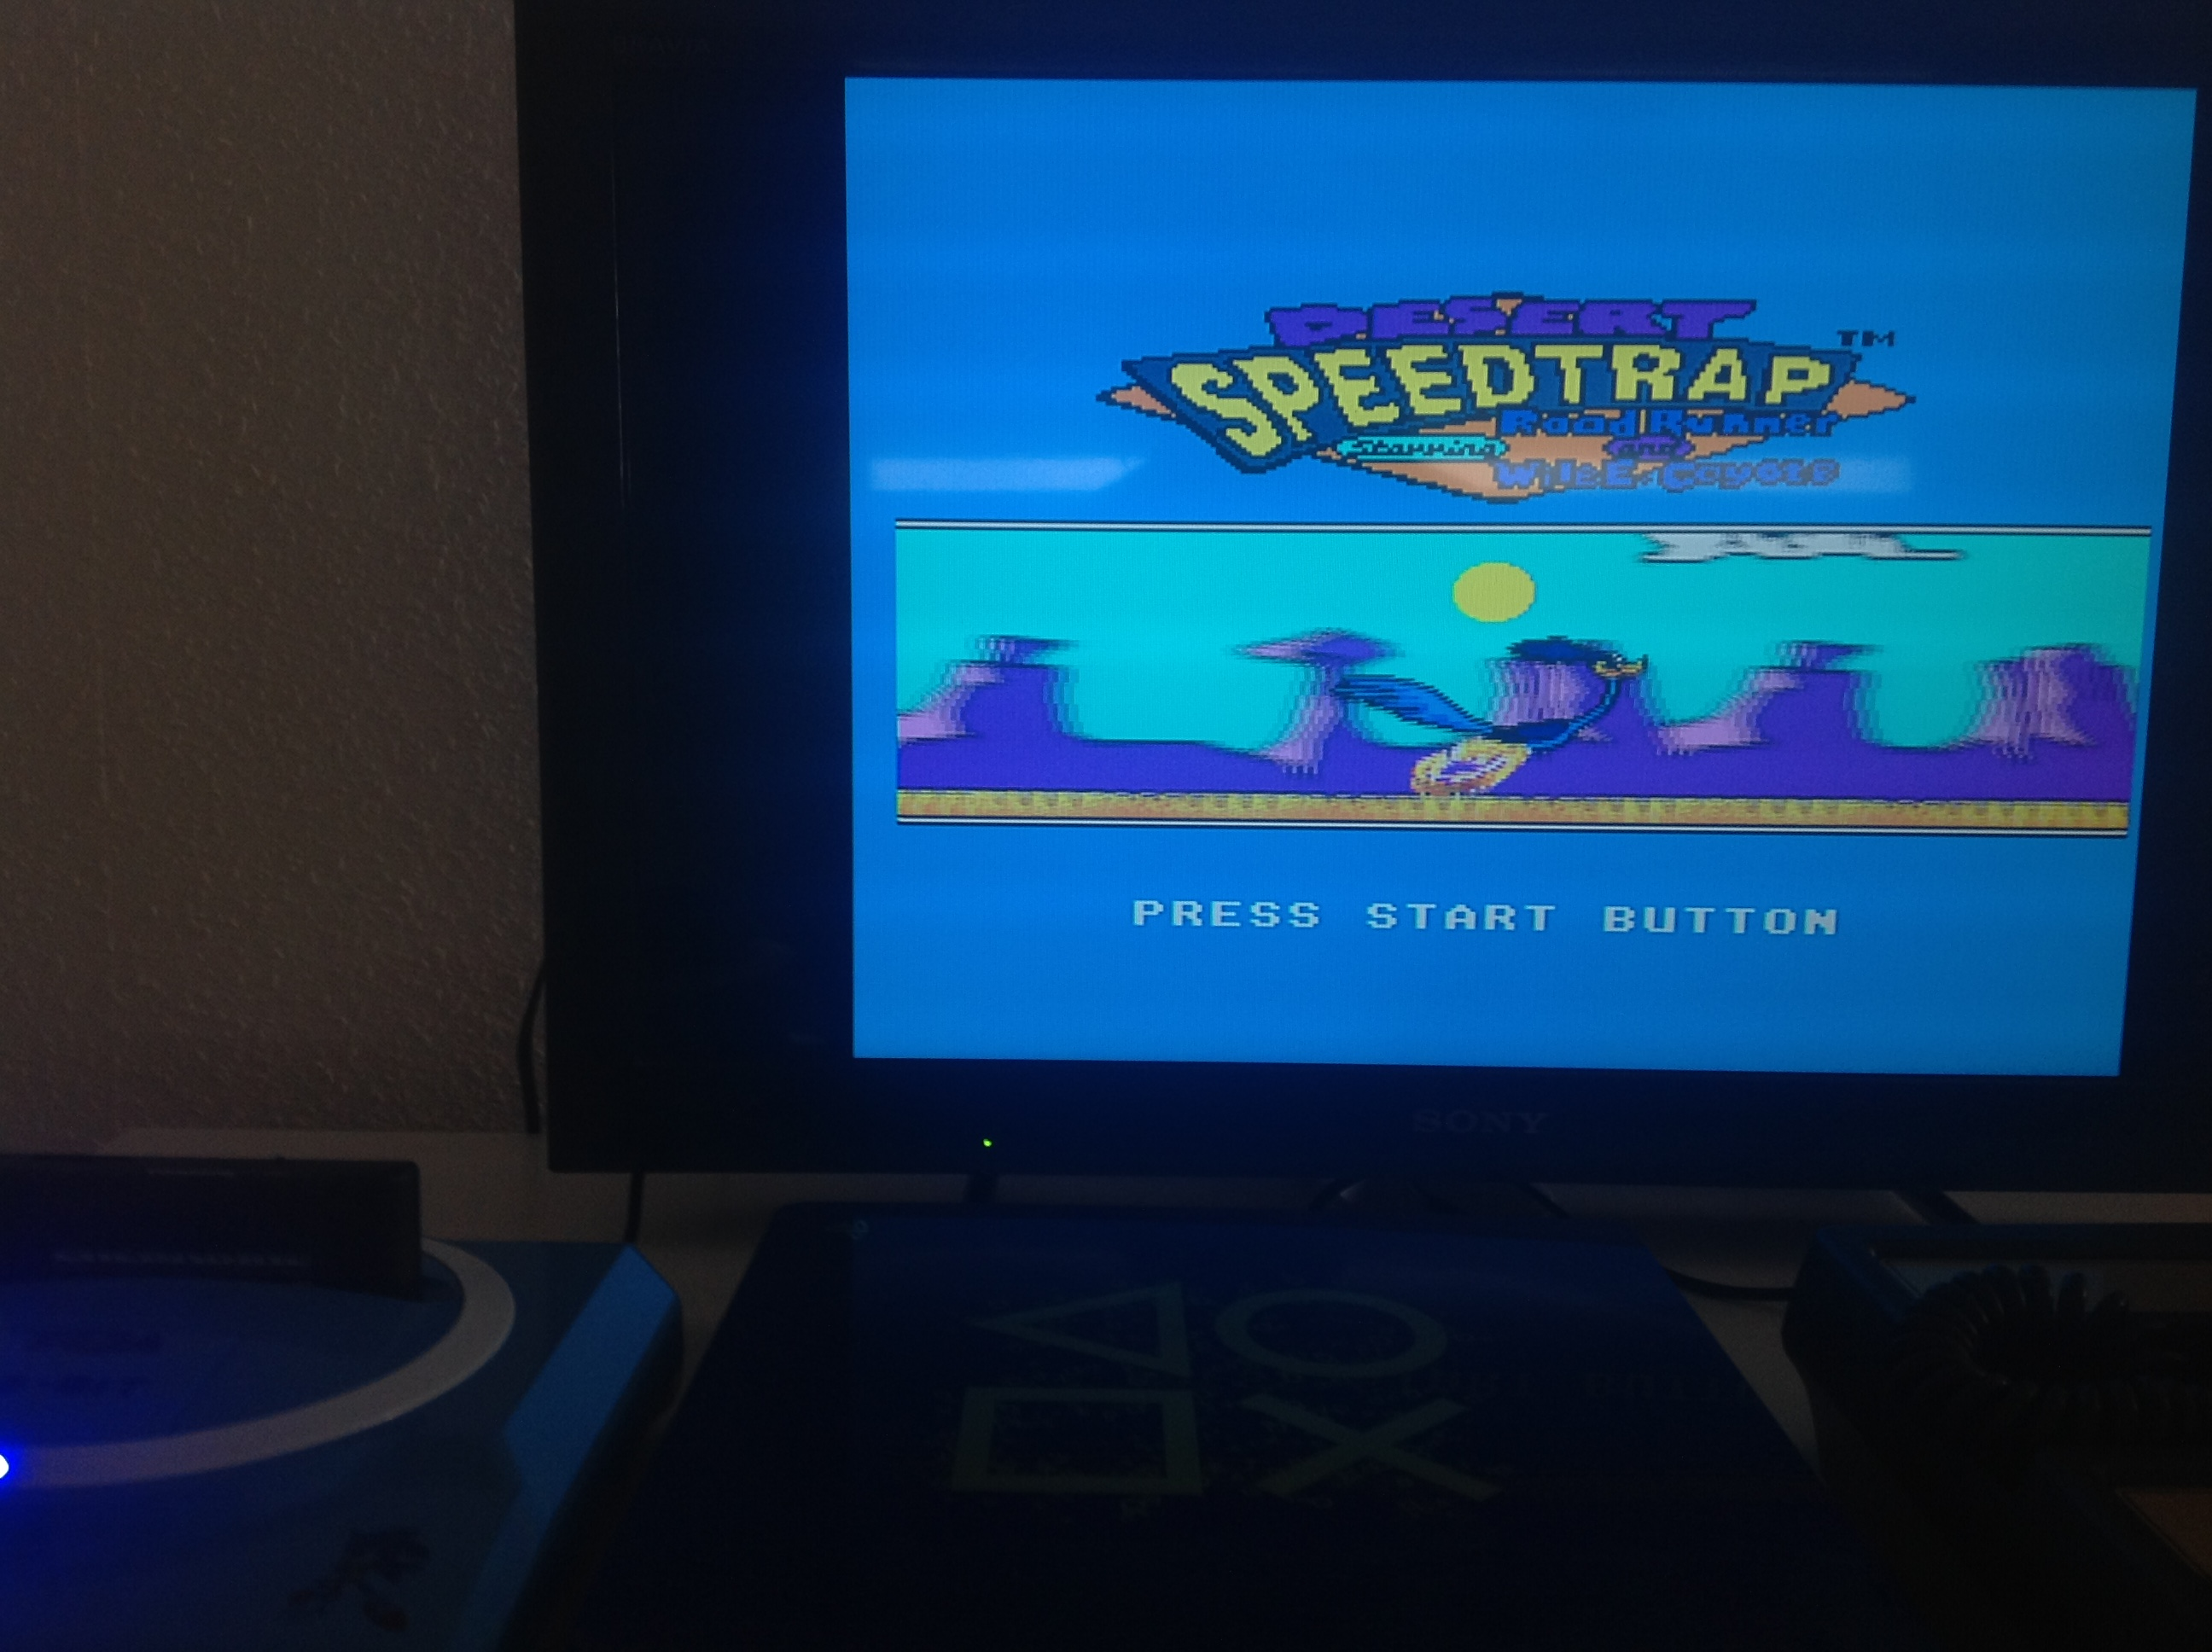 CoCoForest: Desert Speedtrap (Sega Master System) 15,530 points on 2018-08-07 03:44:05